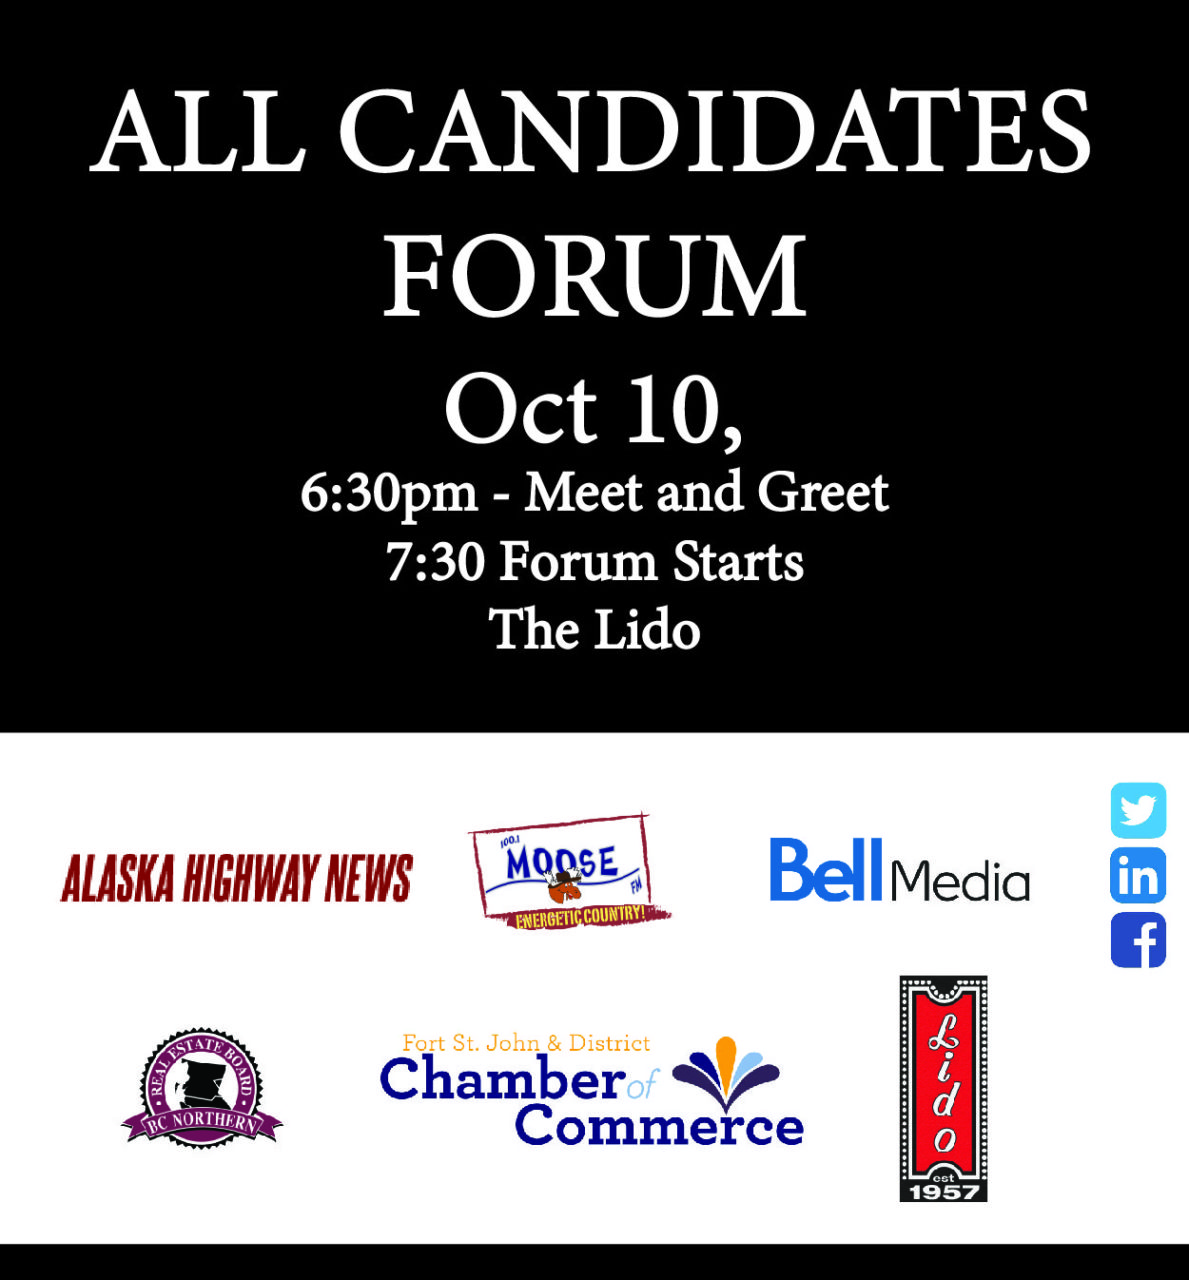 All Candidates Forum @ The Lido